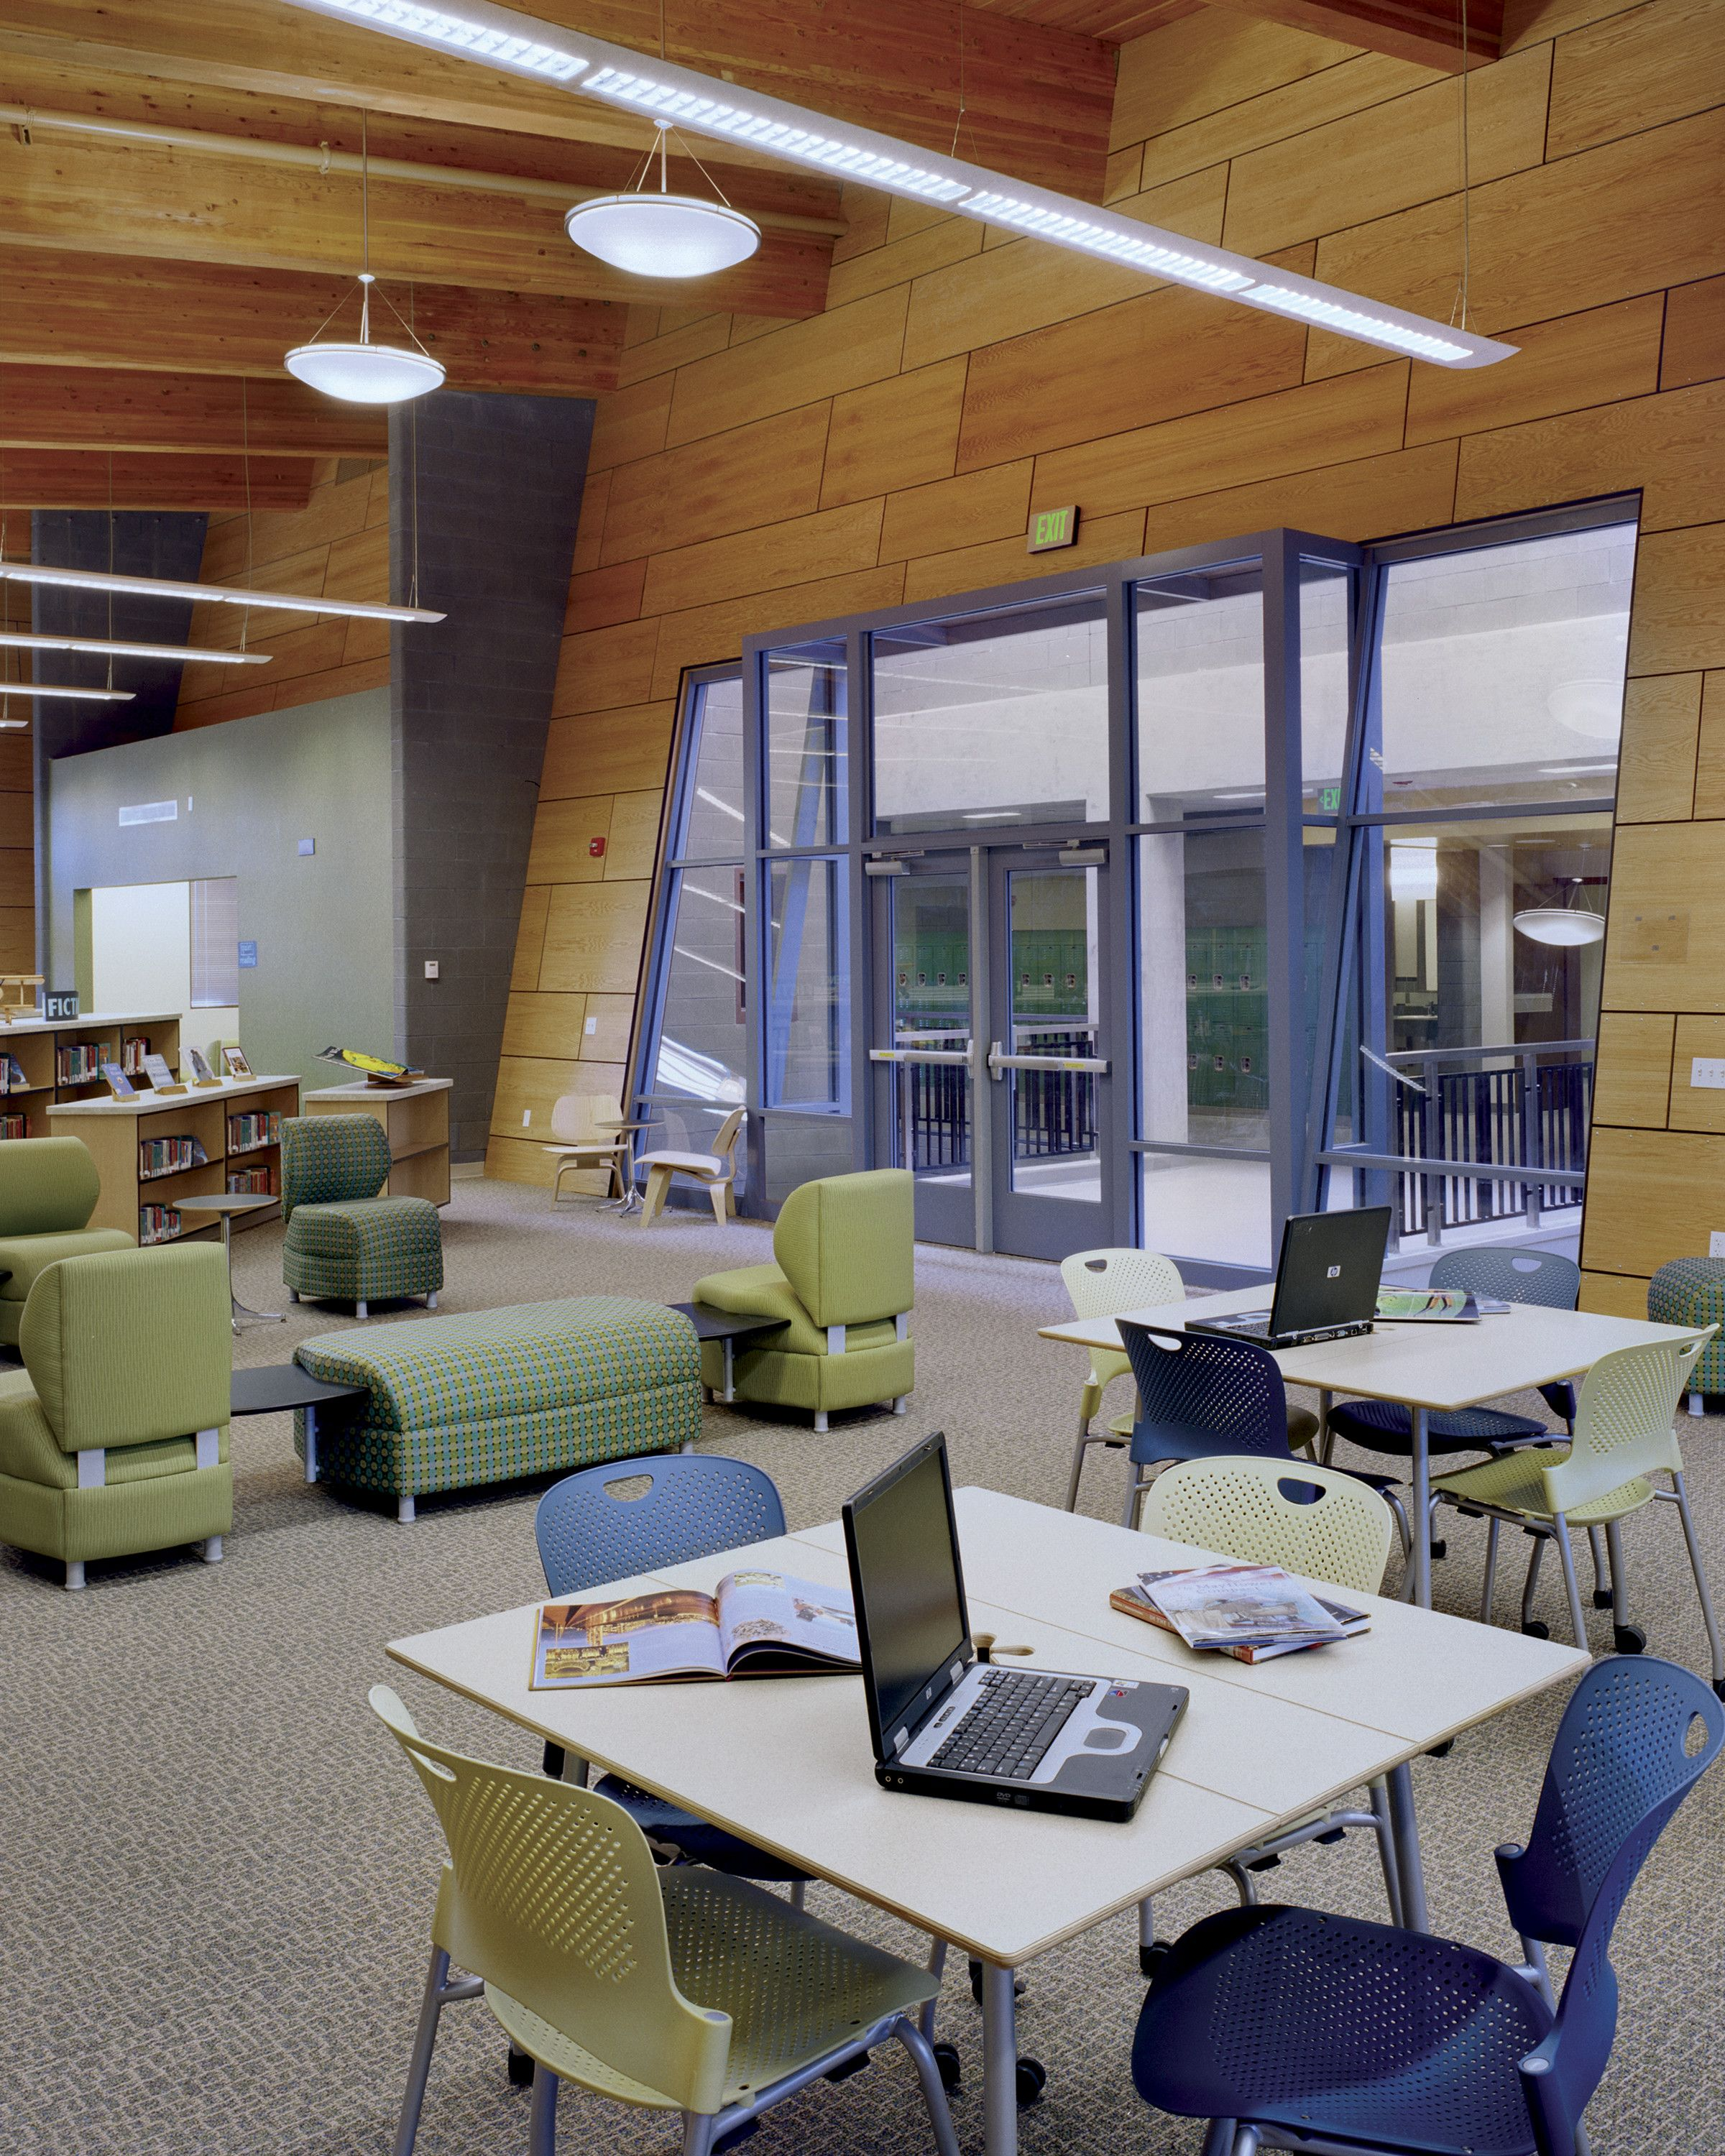 Caper Chairs and Intersect Tables Library Setting